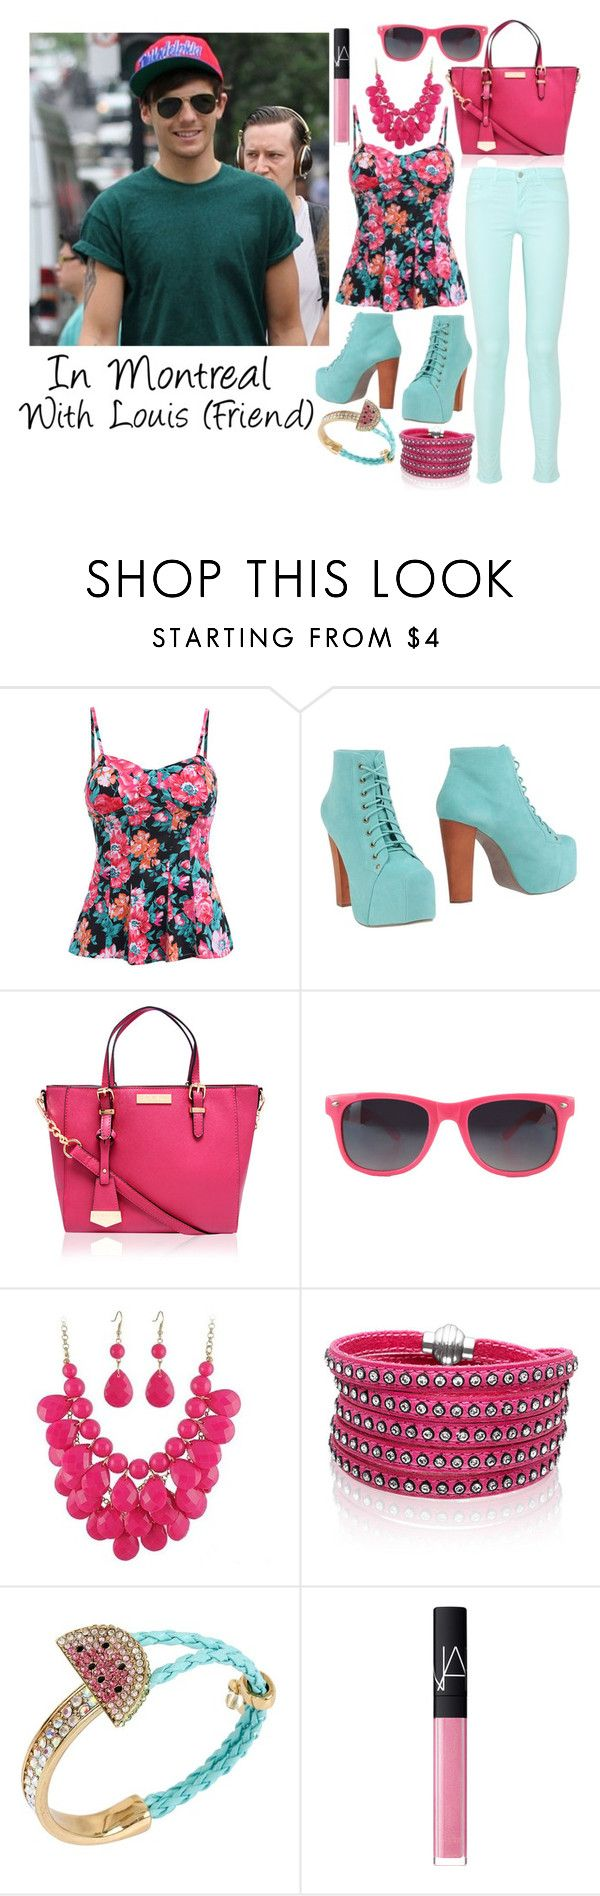 """In Montreal with Louis"" by gingy333 ❤ liked on Polyvore featuring Calder, Jeffrey Campbell, Carvela Kurt Geiger, Sif Jakobs Jewellery, Betsey Johnson and NARS Cosmetics"